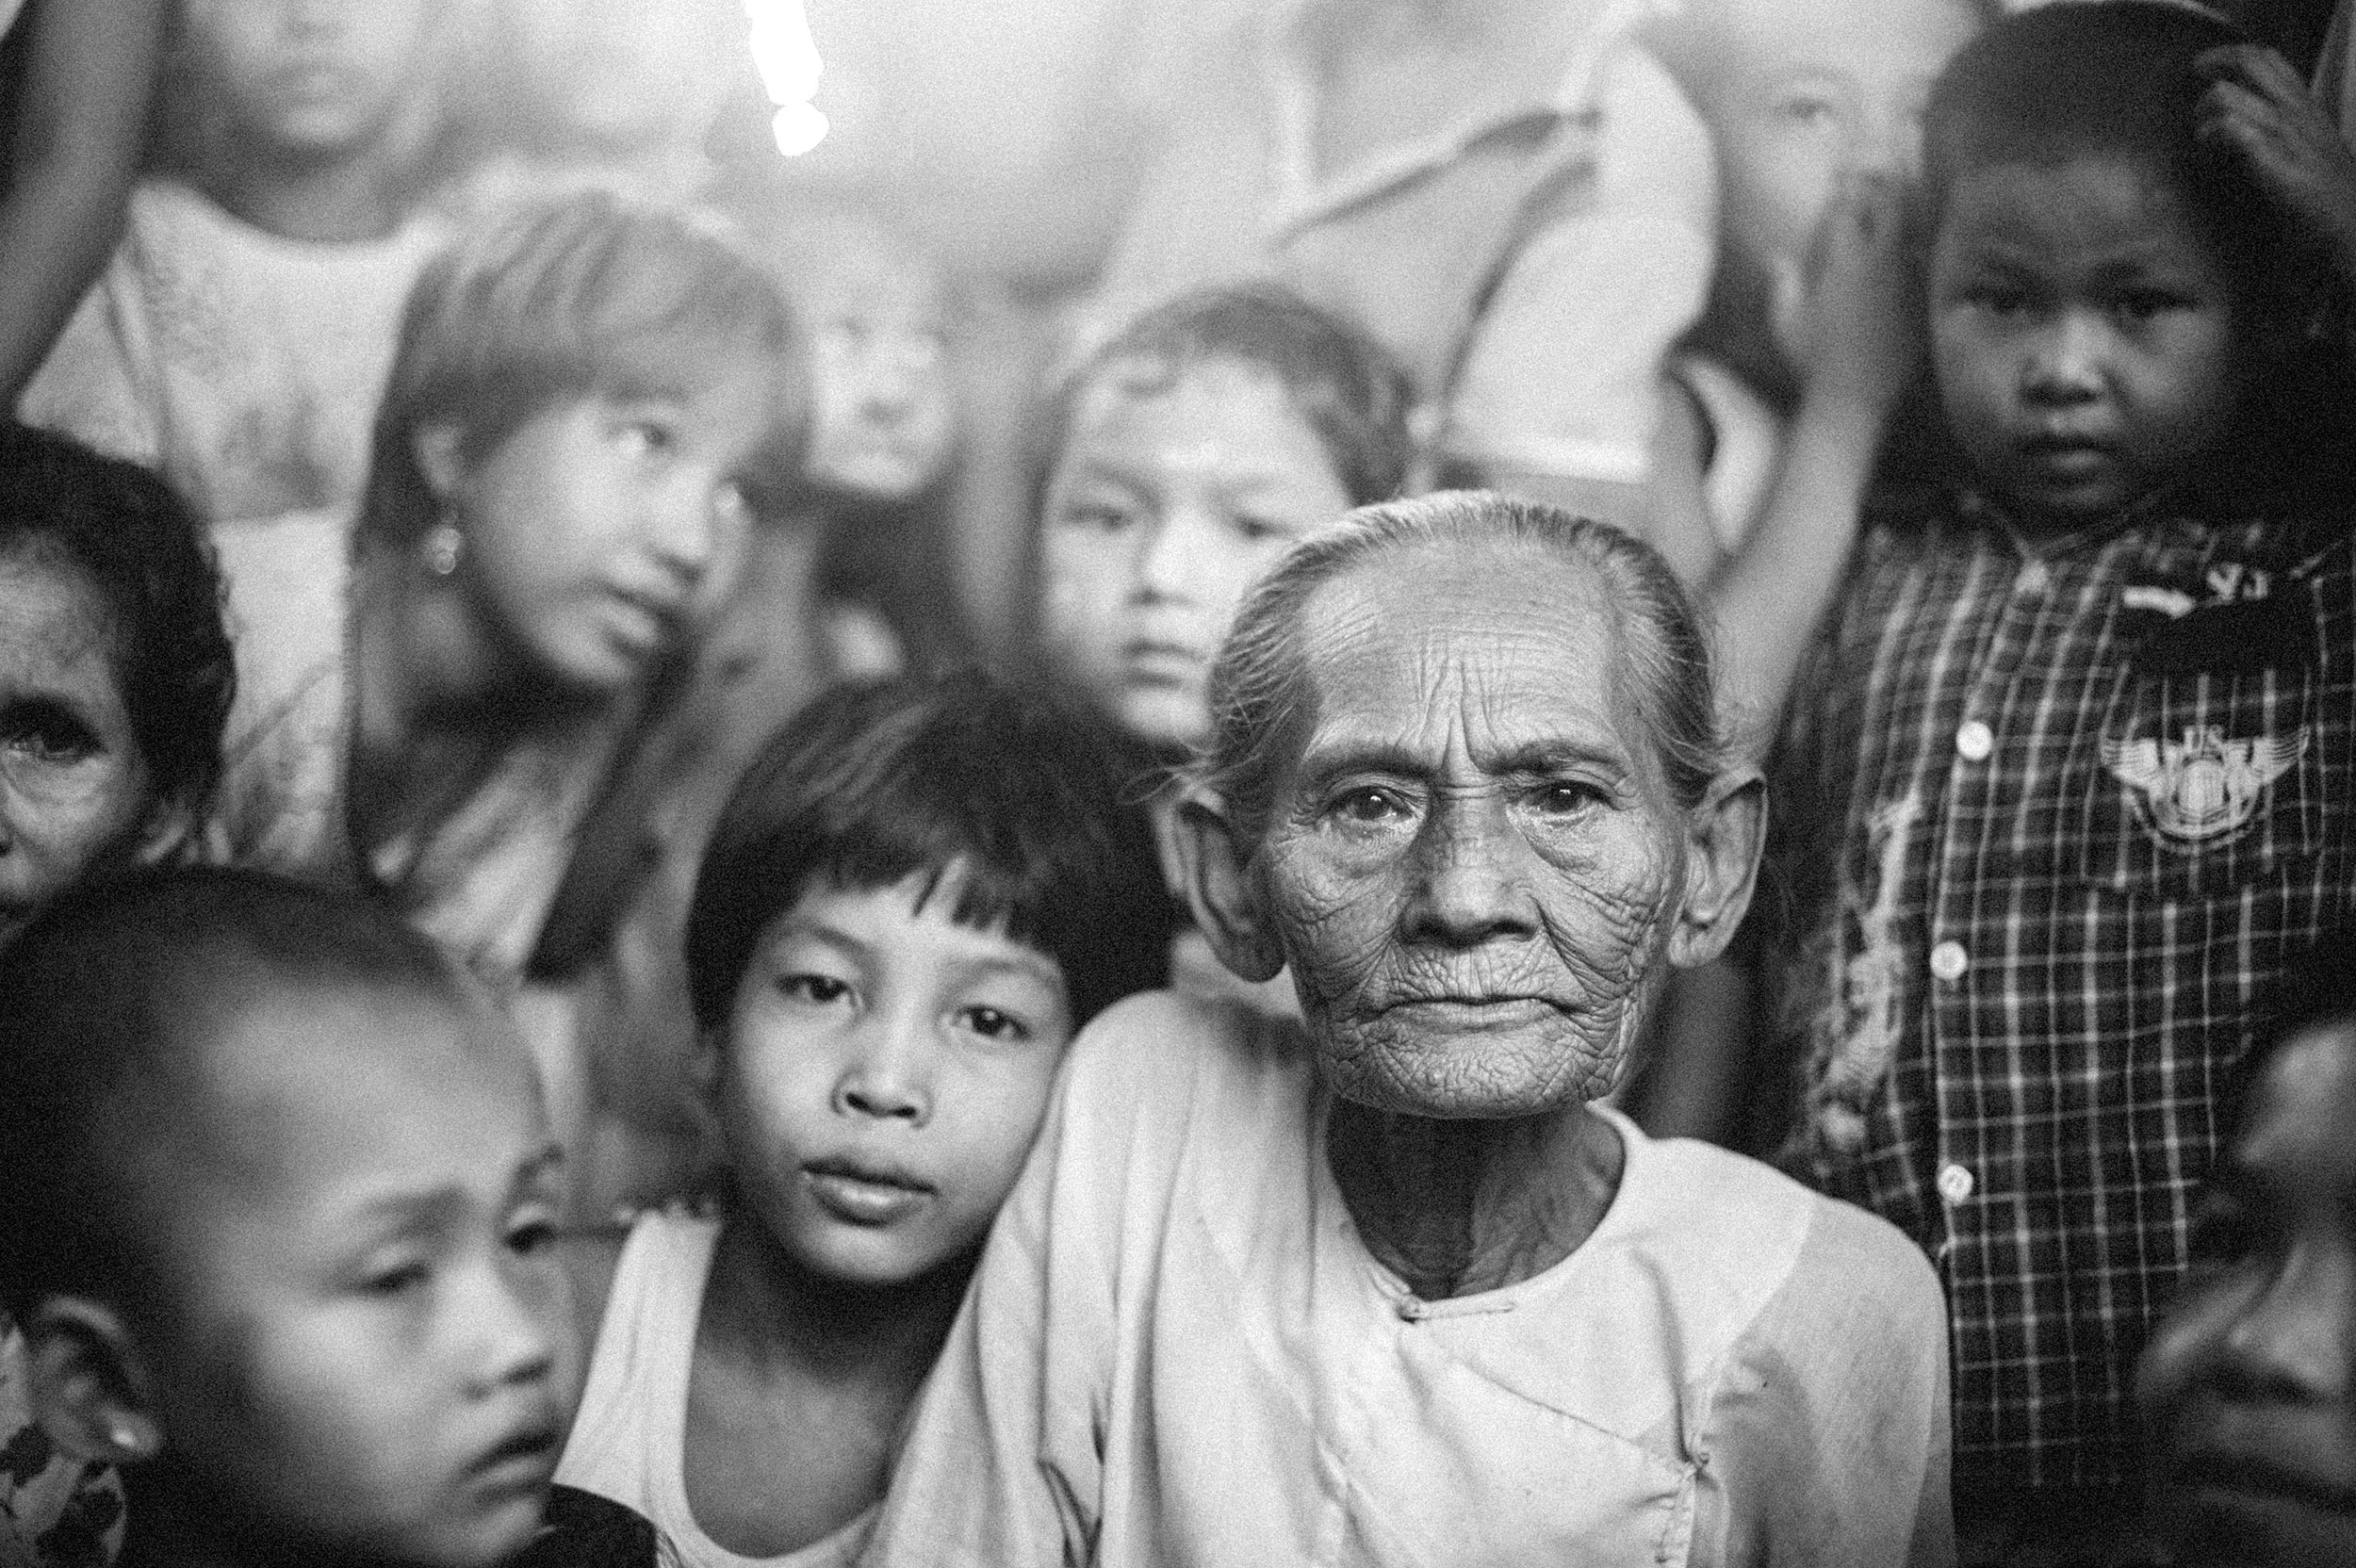 Thousands of refugees gathered in the city's monasteries after loosing their homes to arson in Sittwe.